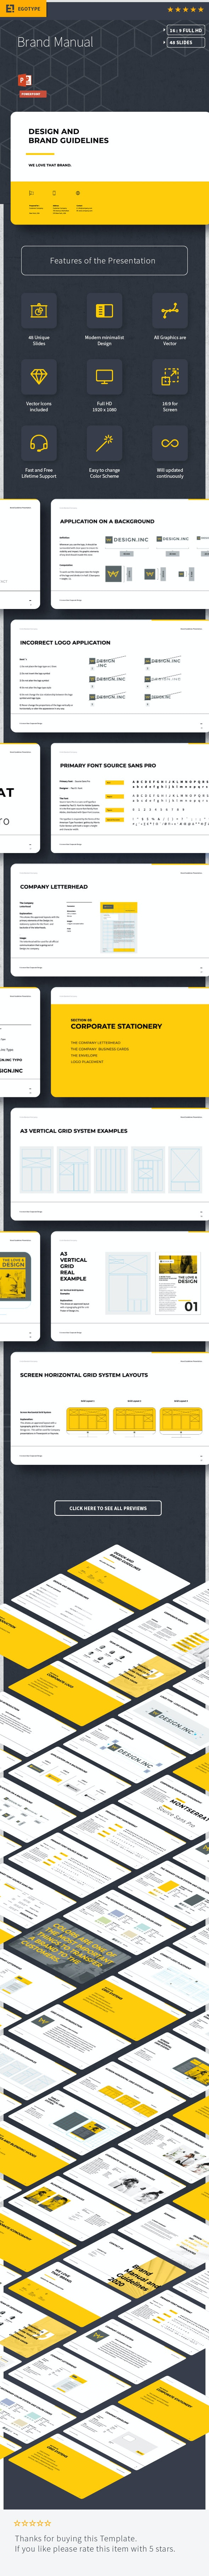 Brand Manual PowerPoint - Creative Keynote Templates